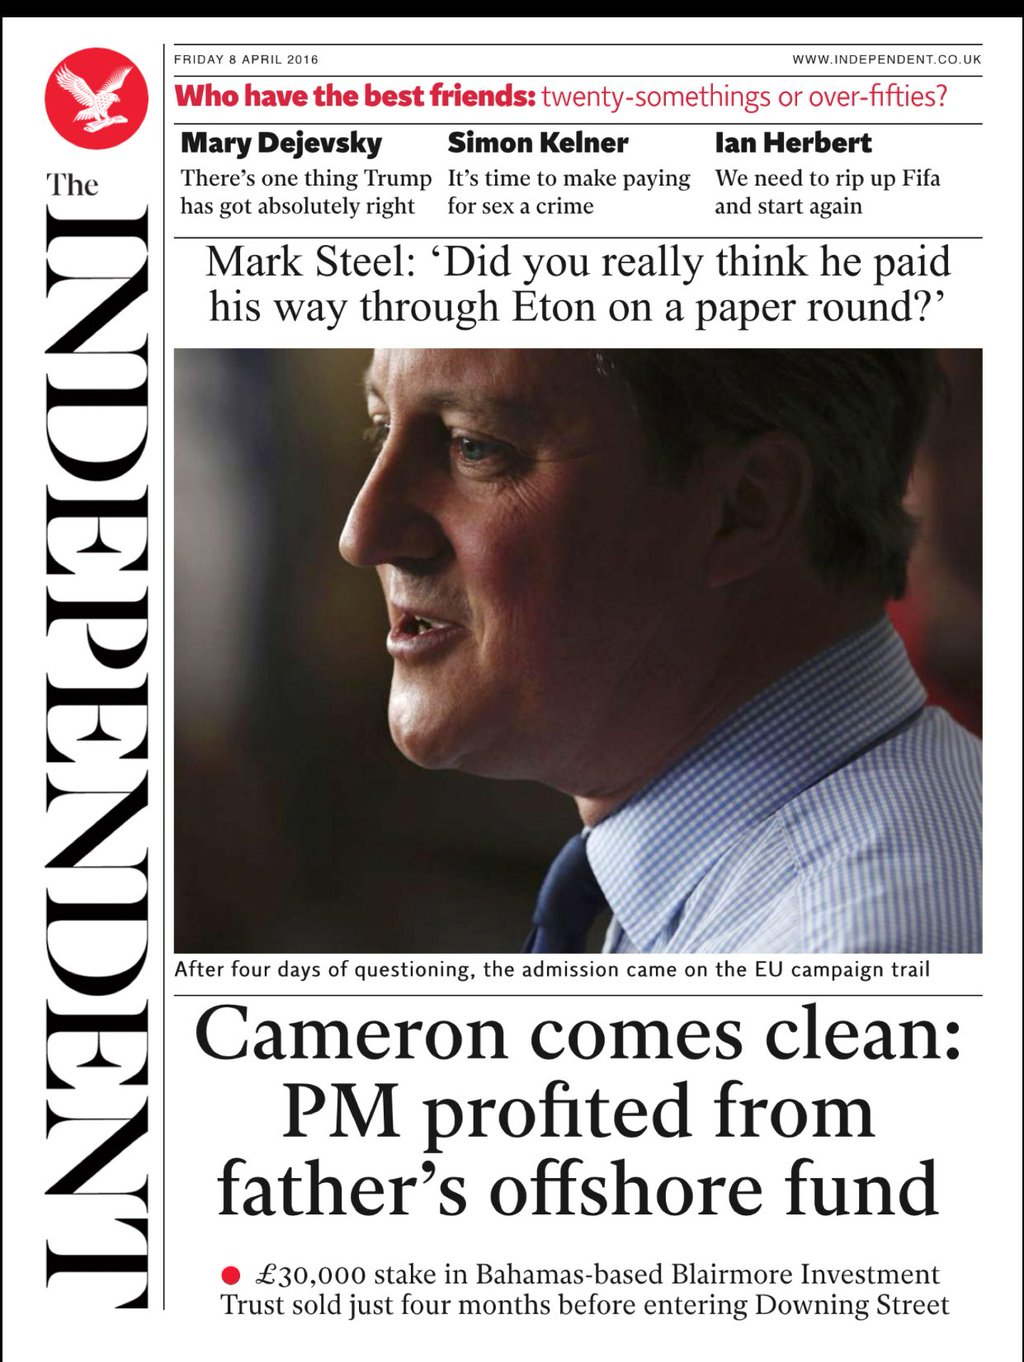 Tomorrow's Independent digital front page, courtesy of @Hendopolis